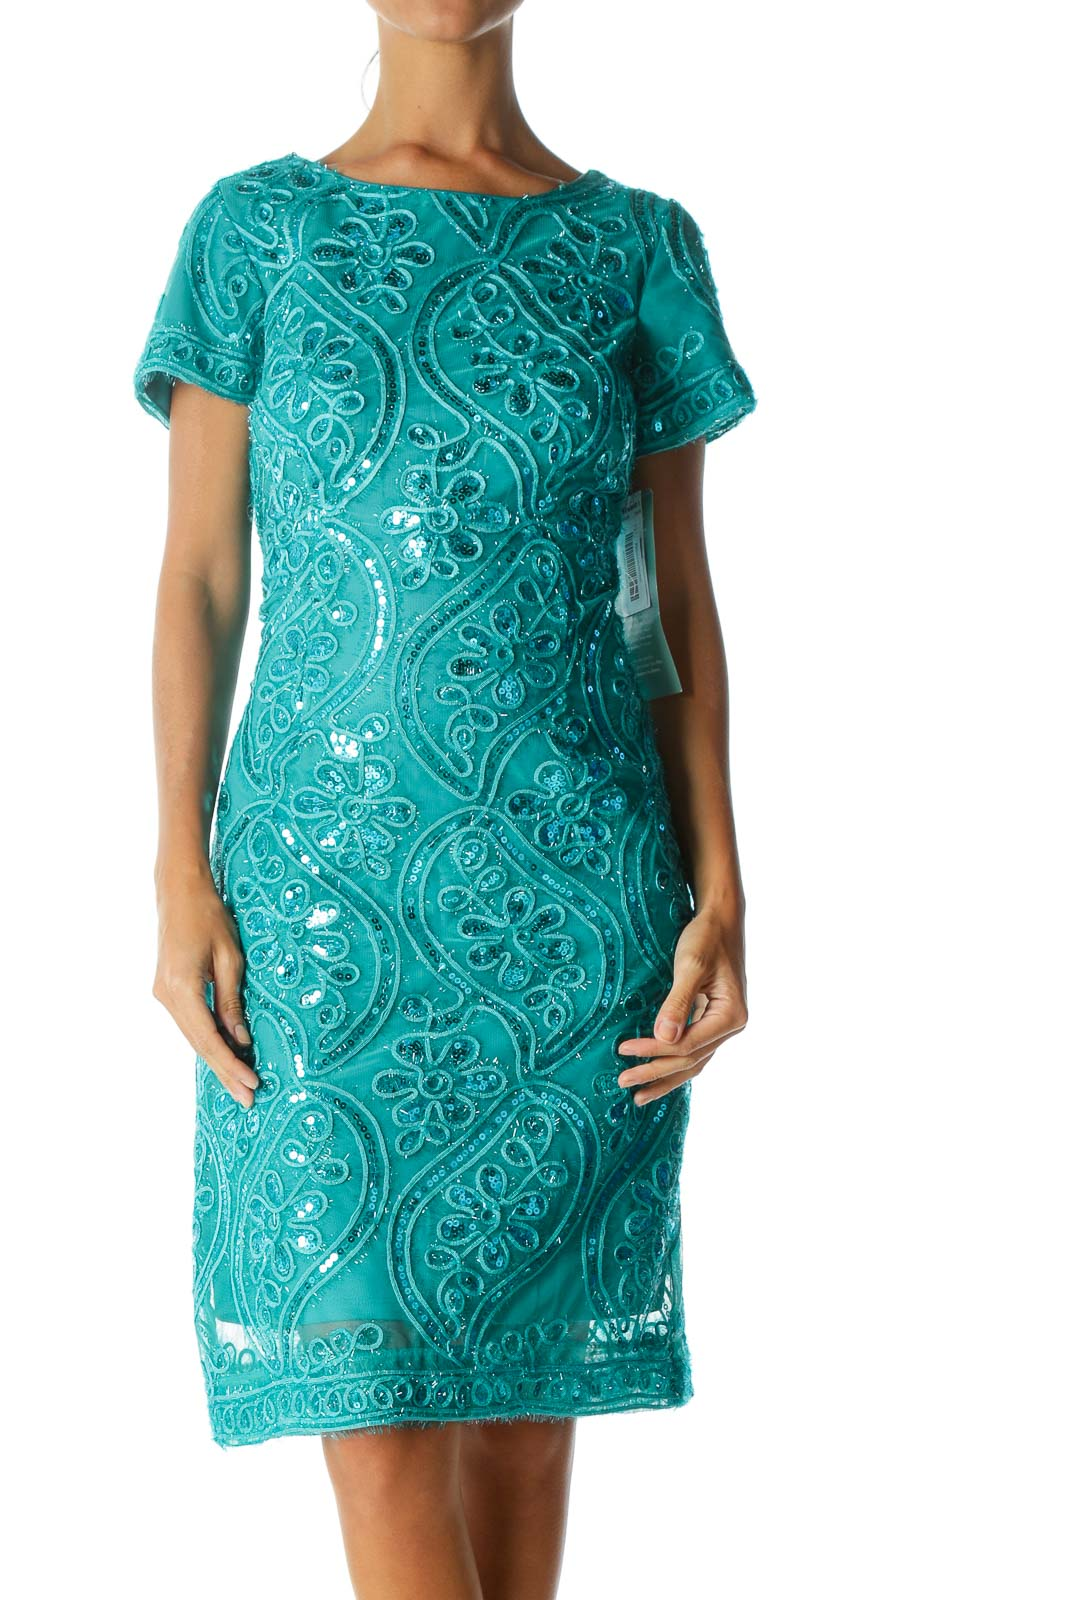 Green Metallic Low Back Cocktail Dress   Front